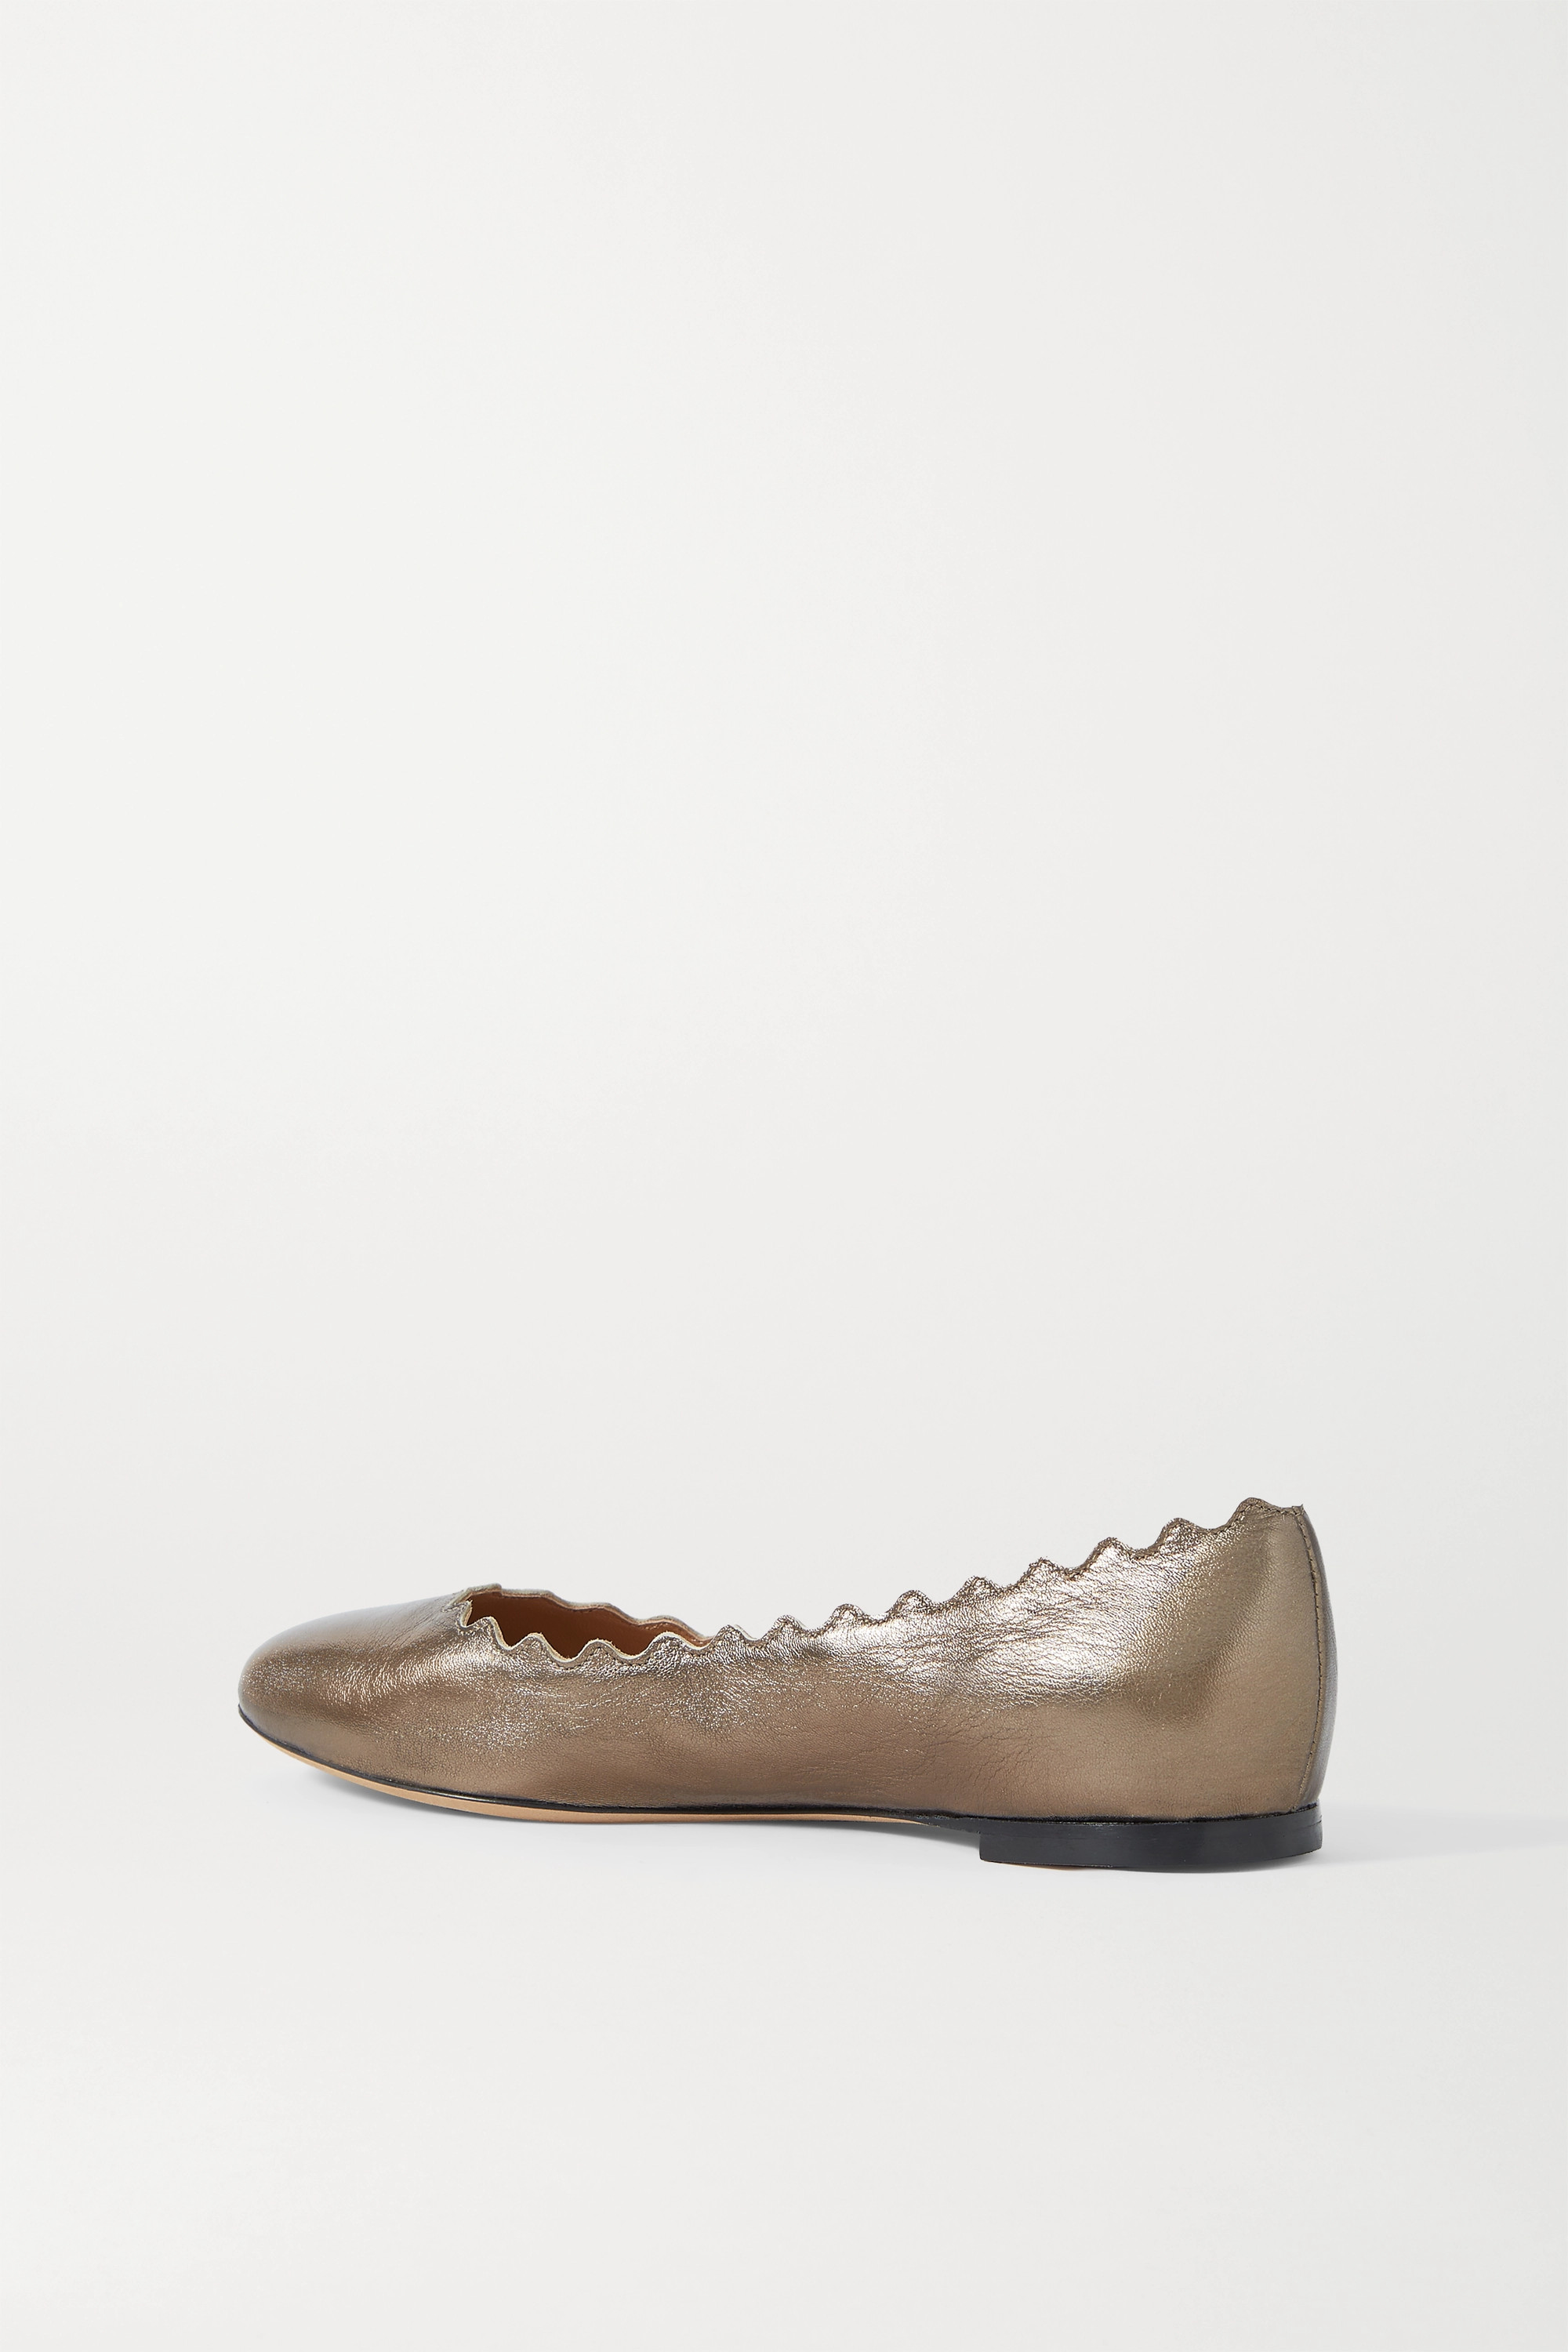 CHLOÉ Lauren scalloped metallic cracked-leather ballet flats